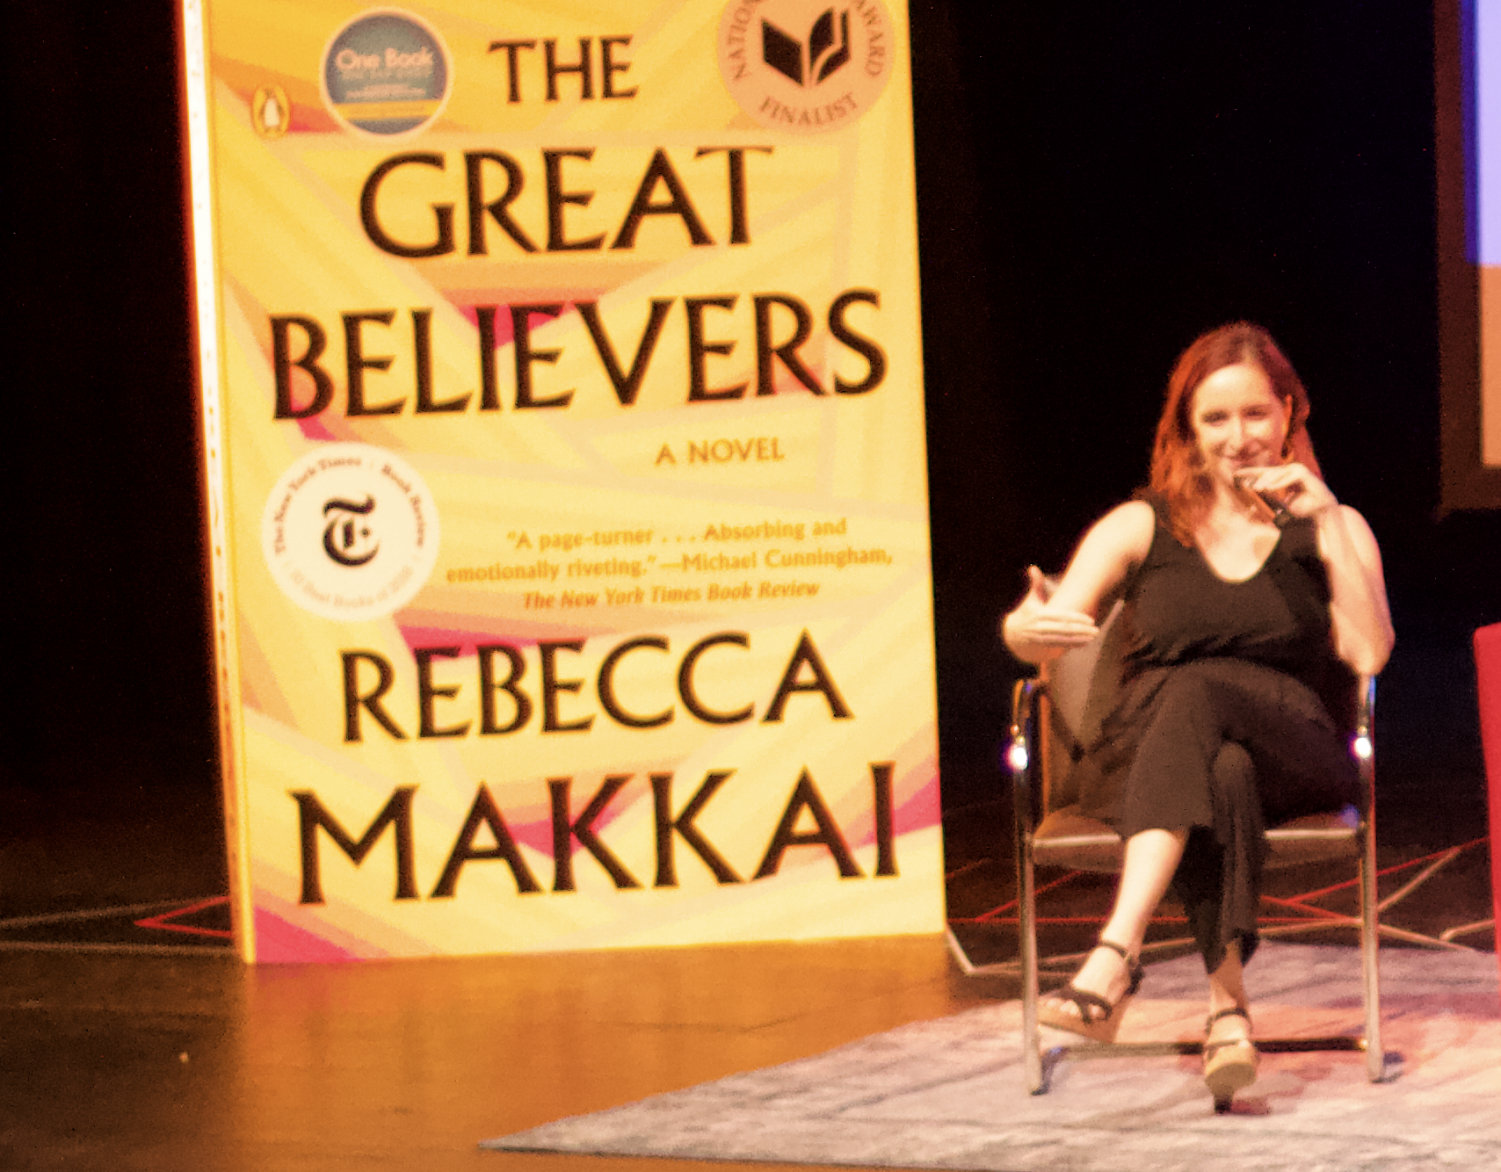 Author Rebecca Makkai visited City College to talk about her new book. Photo by Sonny Garibay